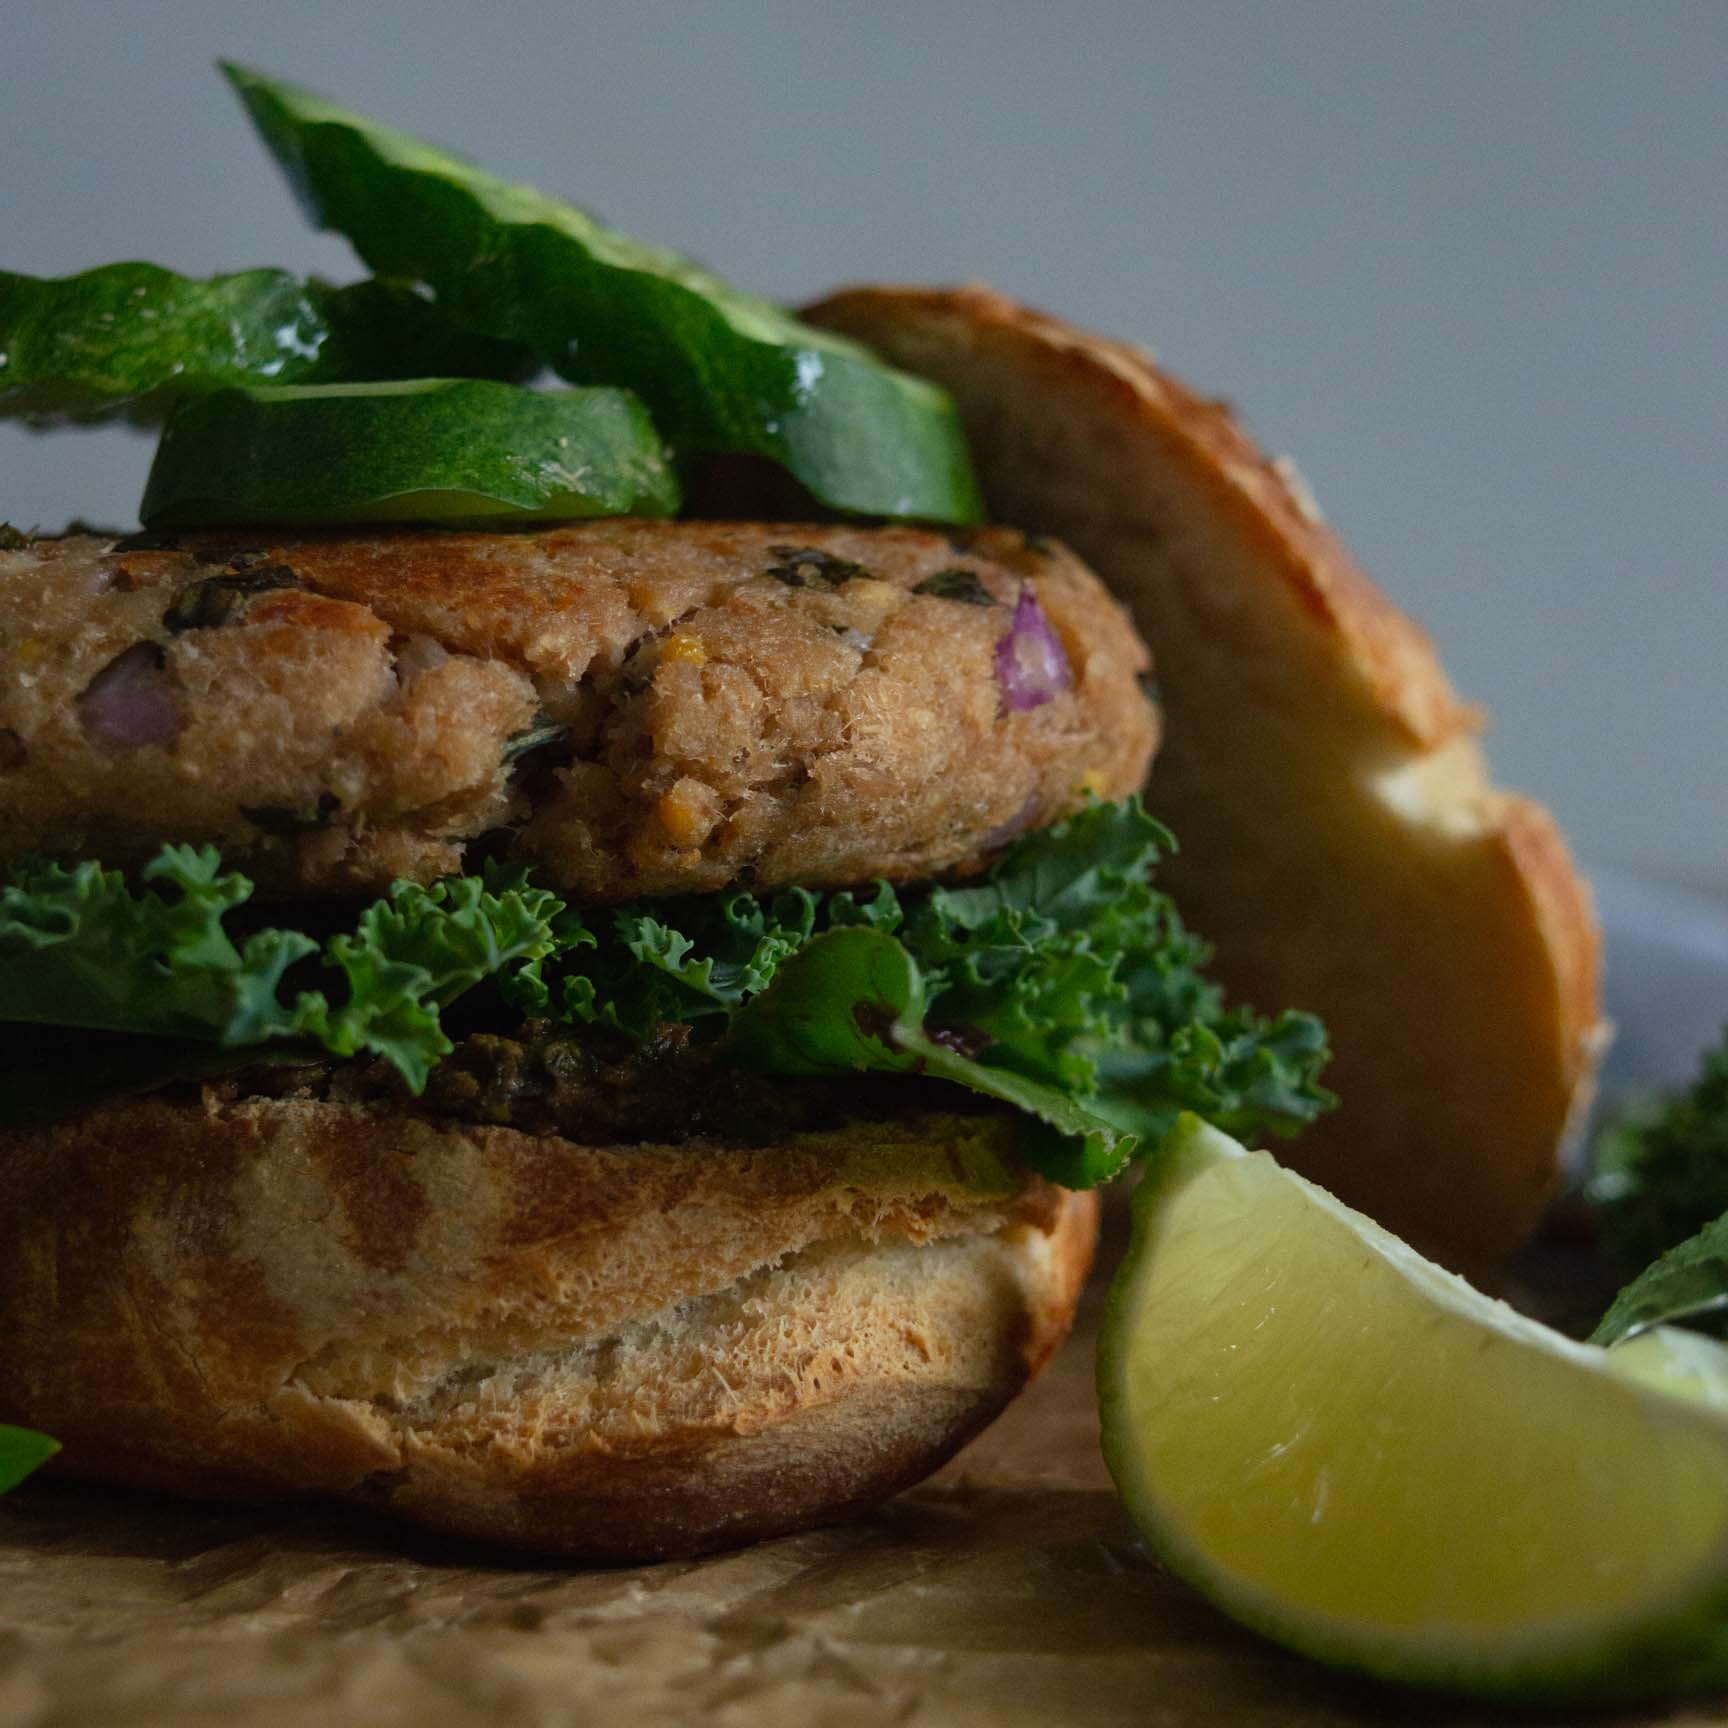 quick lime and basil tuna burger served on a bun with salad leaves and a wedge on lime